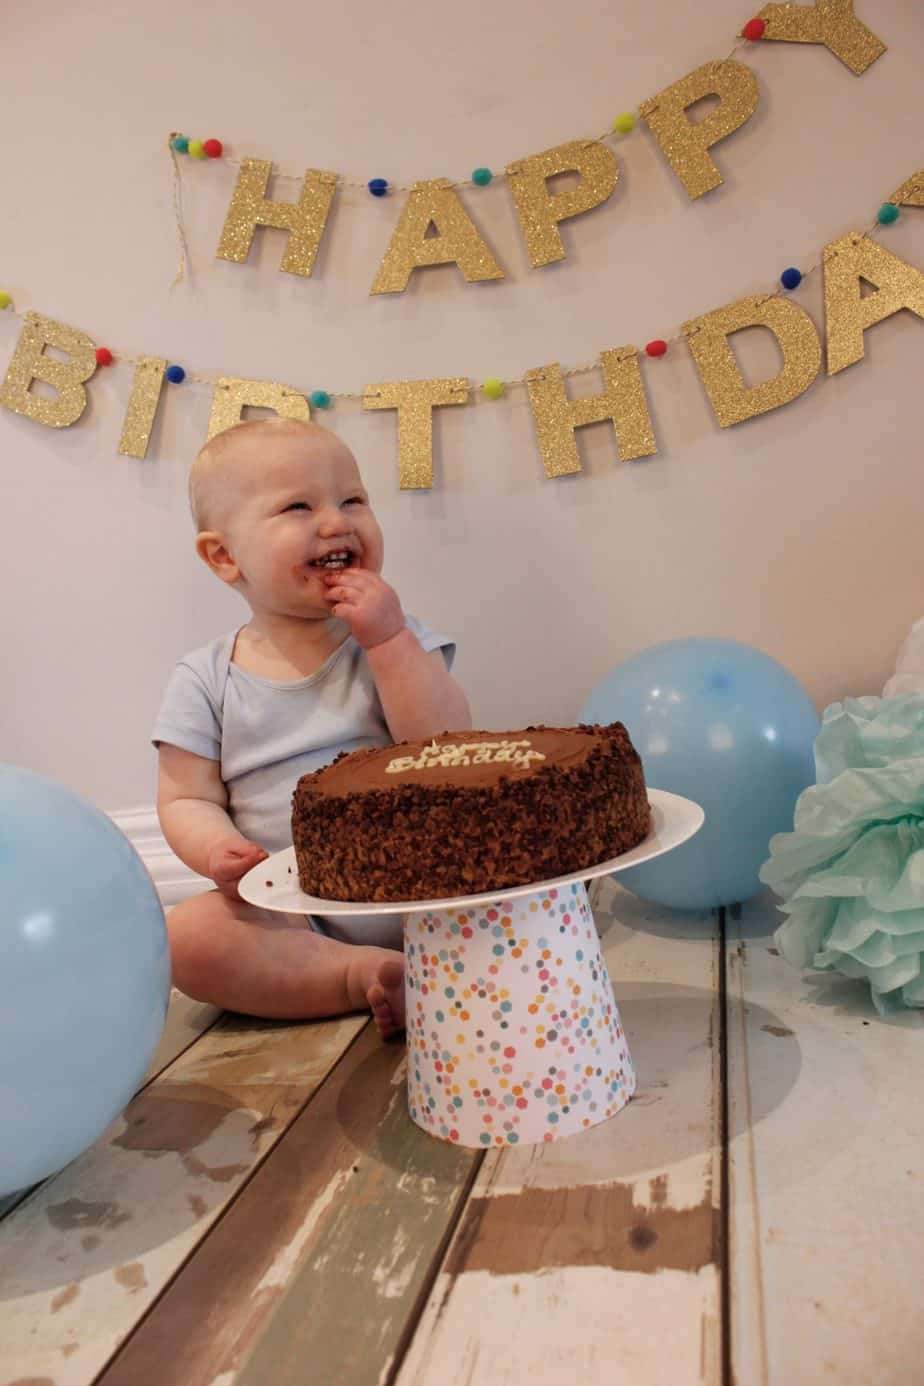 Baby K enjoying his cake smash